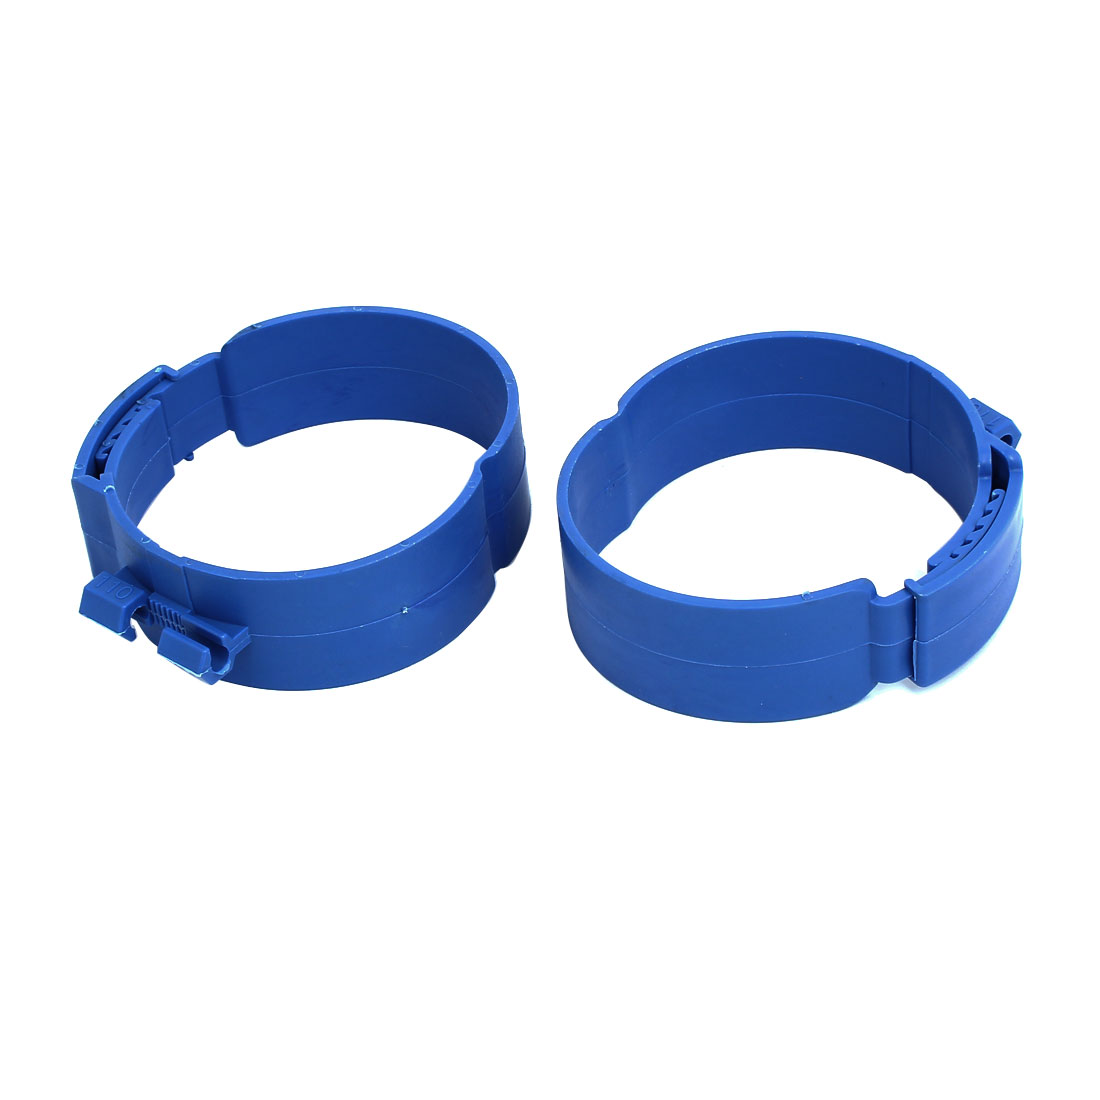 110mm Dia 38mm Width Central Air Conditioner Pipe Clip Clamp Blue 2pcs